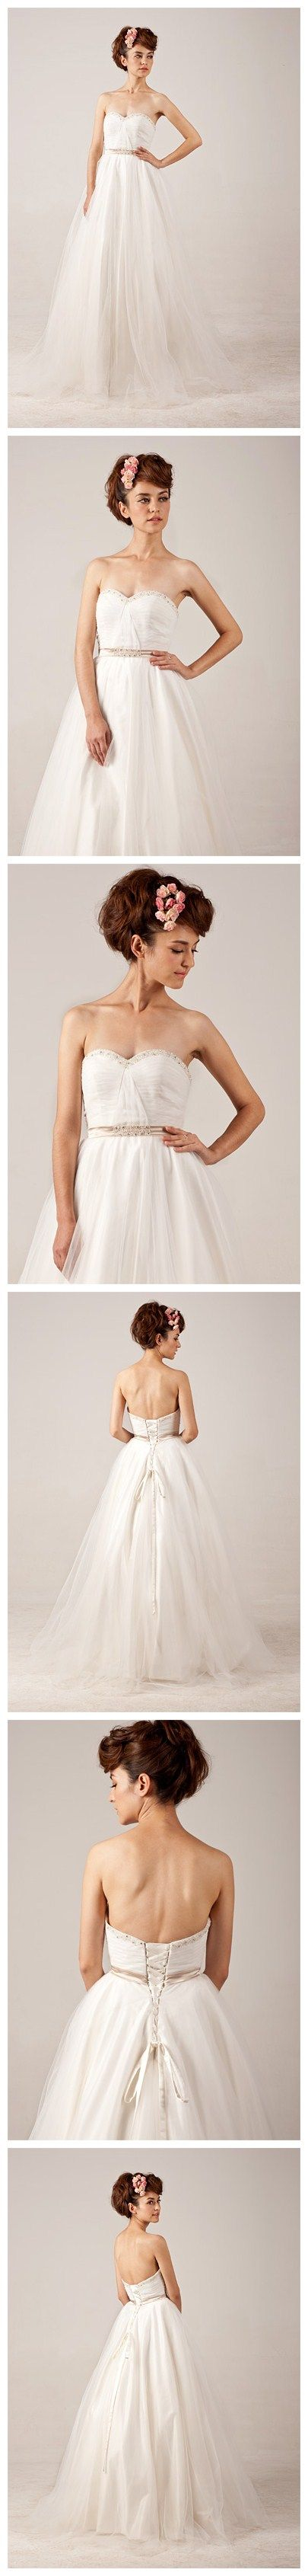 Lace-up Ball Grown Beading Strapless Tulle Wedding Dress. LOVE THIS